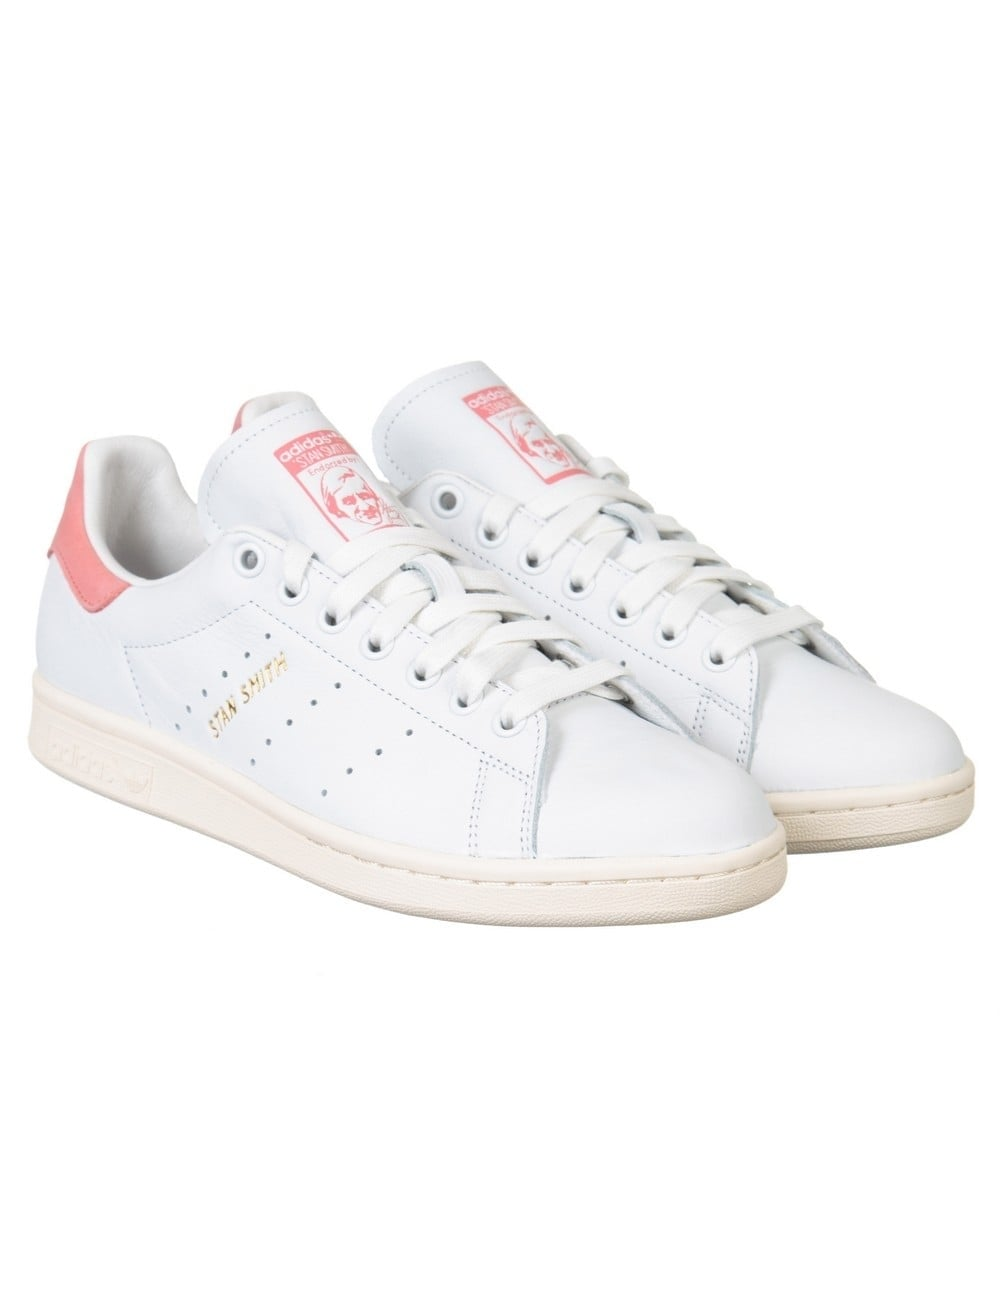 super popular bbfdd c2f42 Stan Smith Shoes - White/Ray Pink